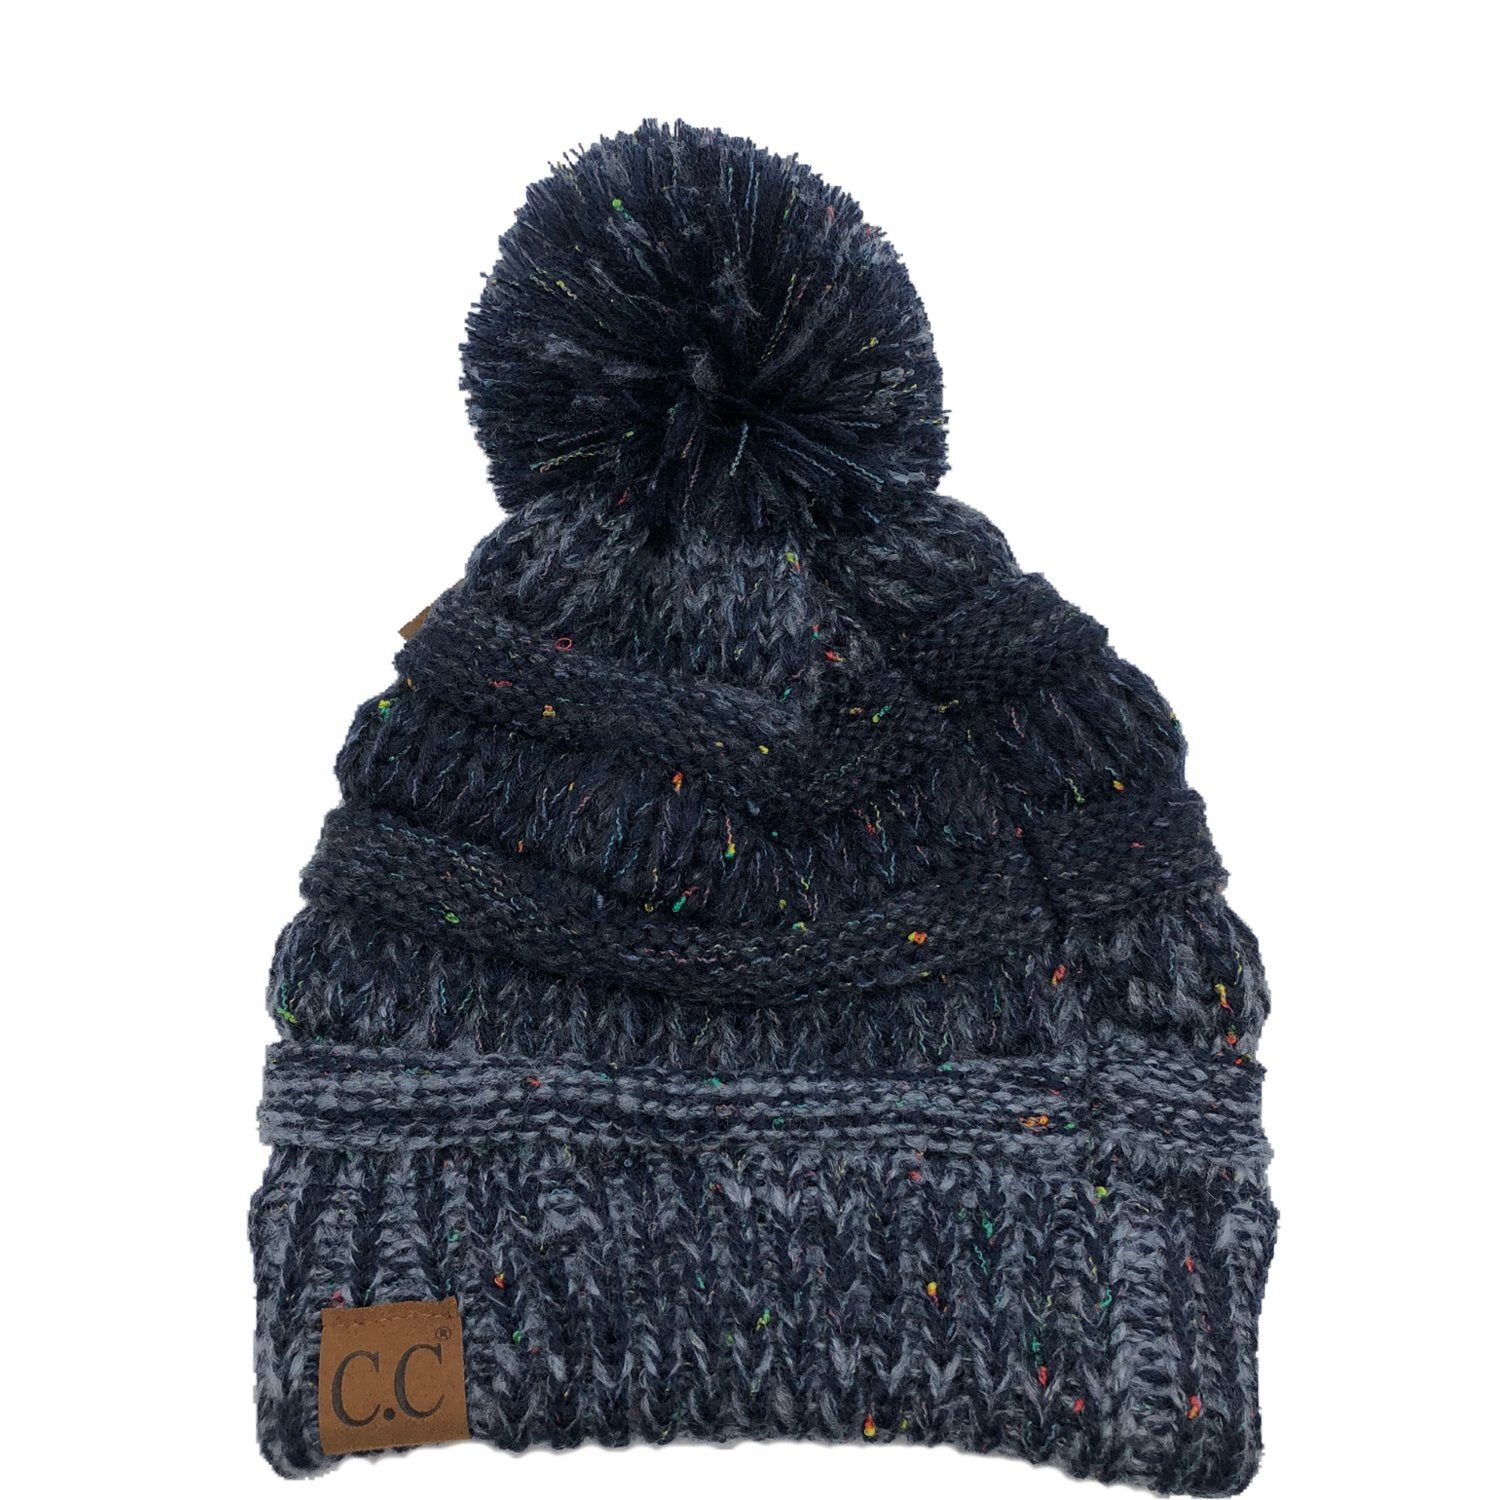 YJ-817 Speckled Pom Beanie - Navy